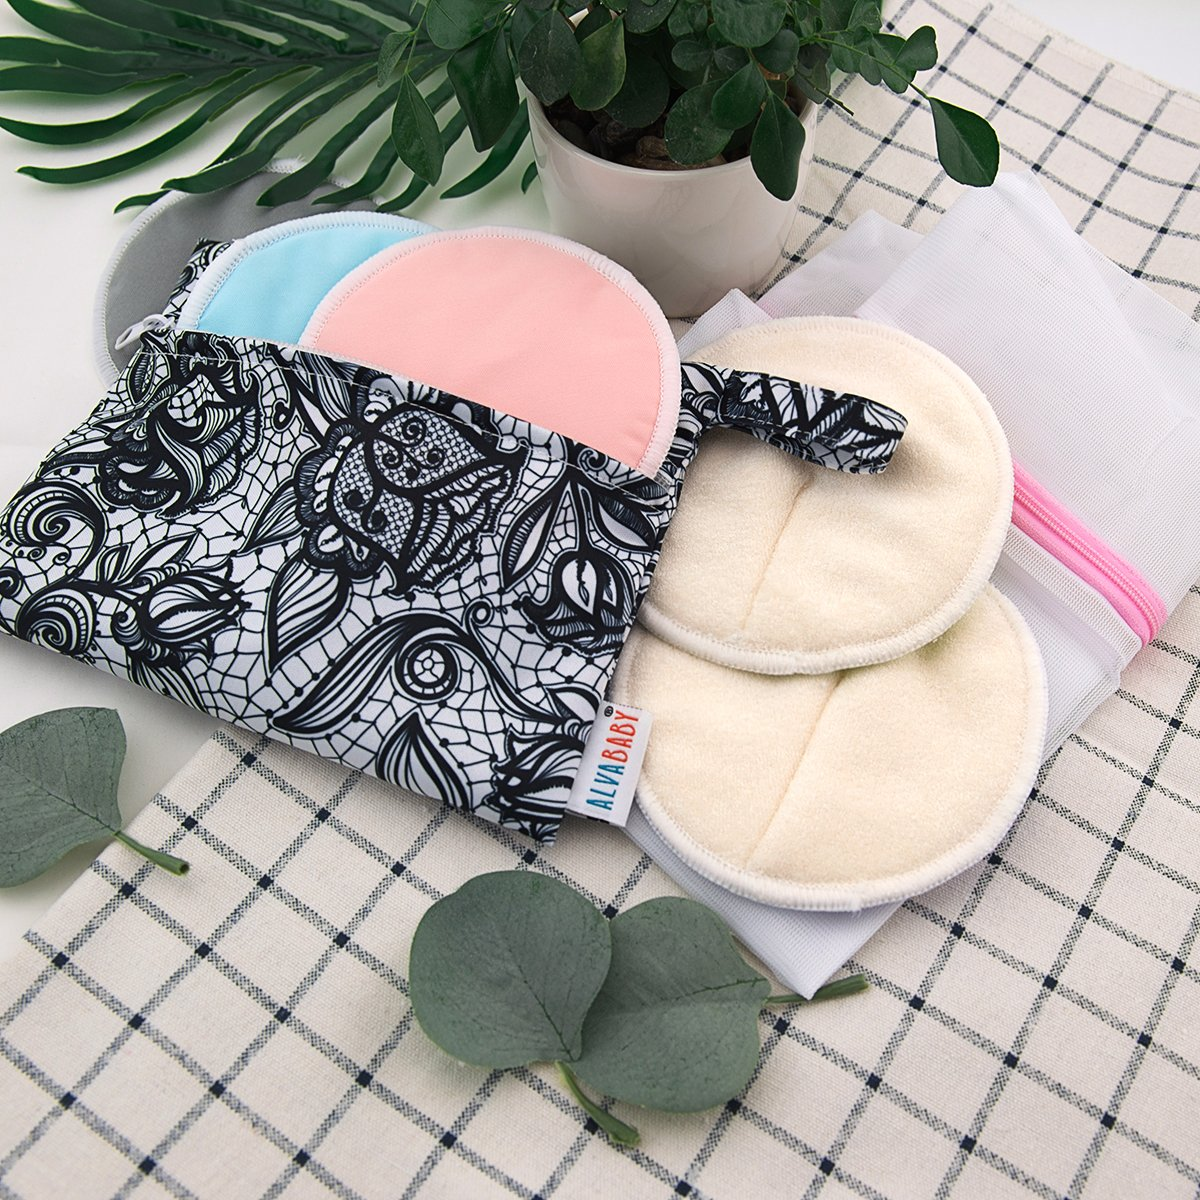 ALVABABY Bamboo Nursing Pads, 16 Pcs Breastfeeding Pads, Reusable & Washable & Soft & Absorbent & Leak-Proof, with One Cloth Wet Bag and One Laundry Bag(16RDB) by ALVA (Image #2)